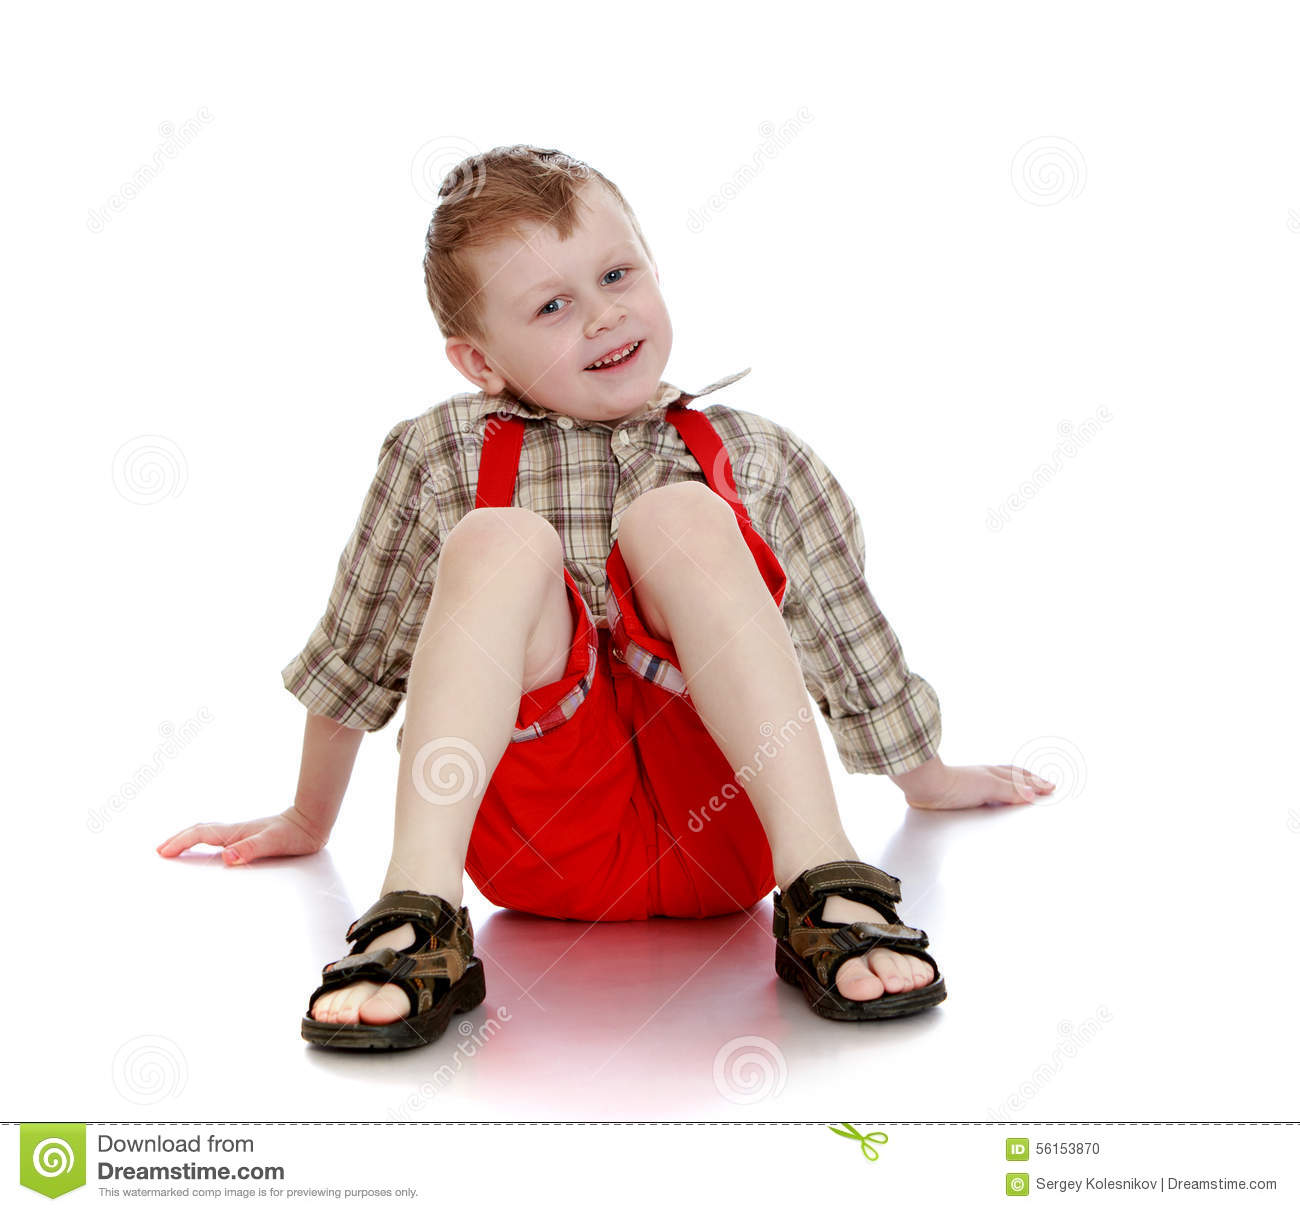 d4a5a7dca Joyful little boy in a plaid shirt, red shorts and flip-flops sitting on  the floor spreading their arms - isolated on white background